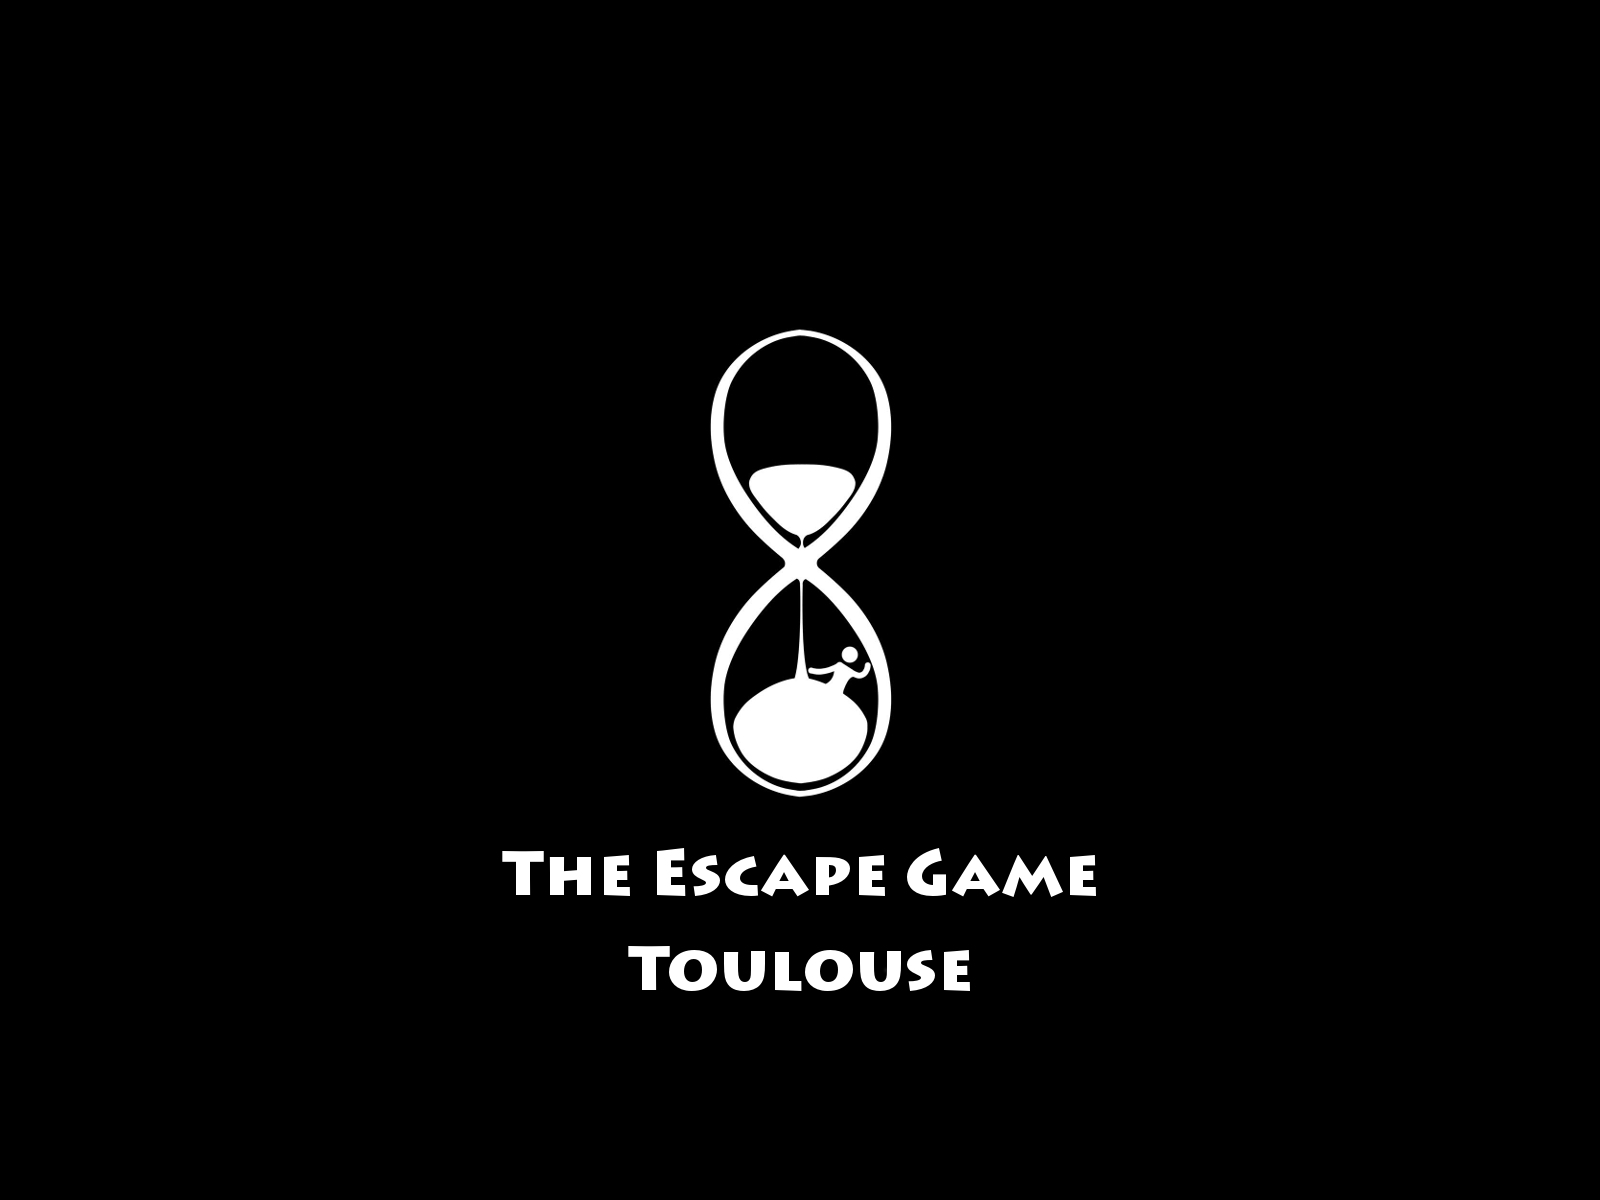 The escape game – Toulouse